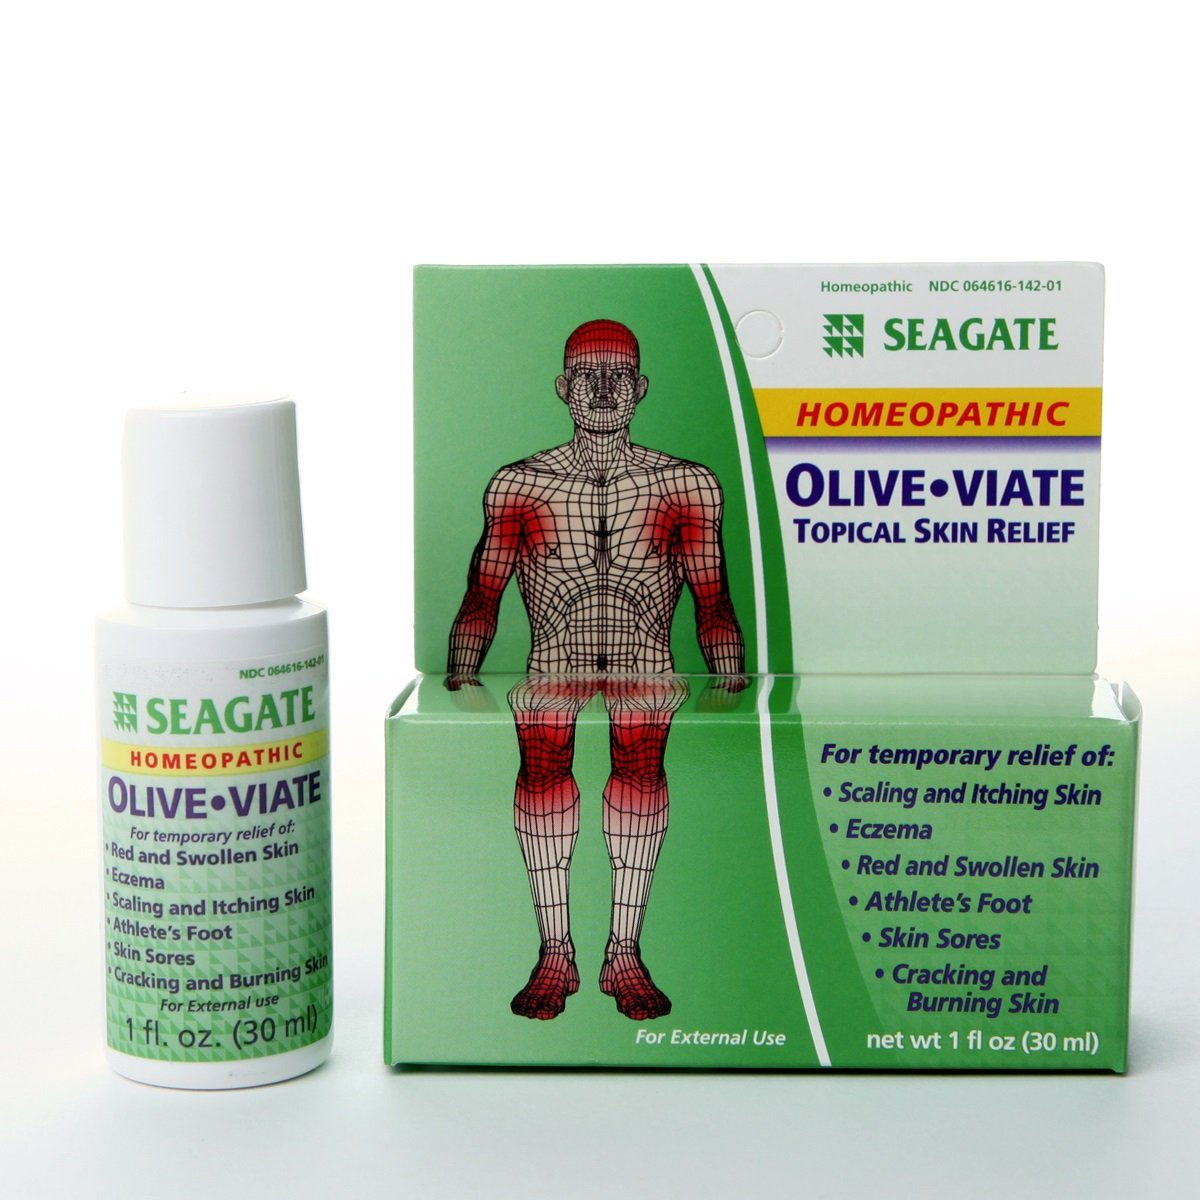 Seagate Products Homeopathic OliveViate Anti-Fungal Topical Skin Relief 1 Fl Oz